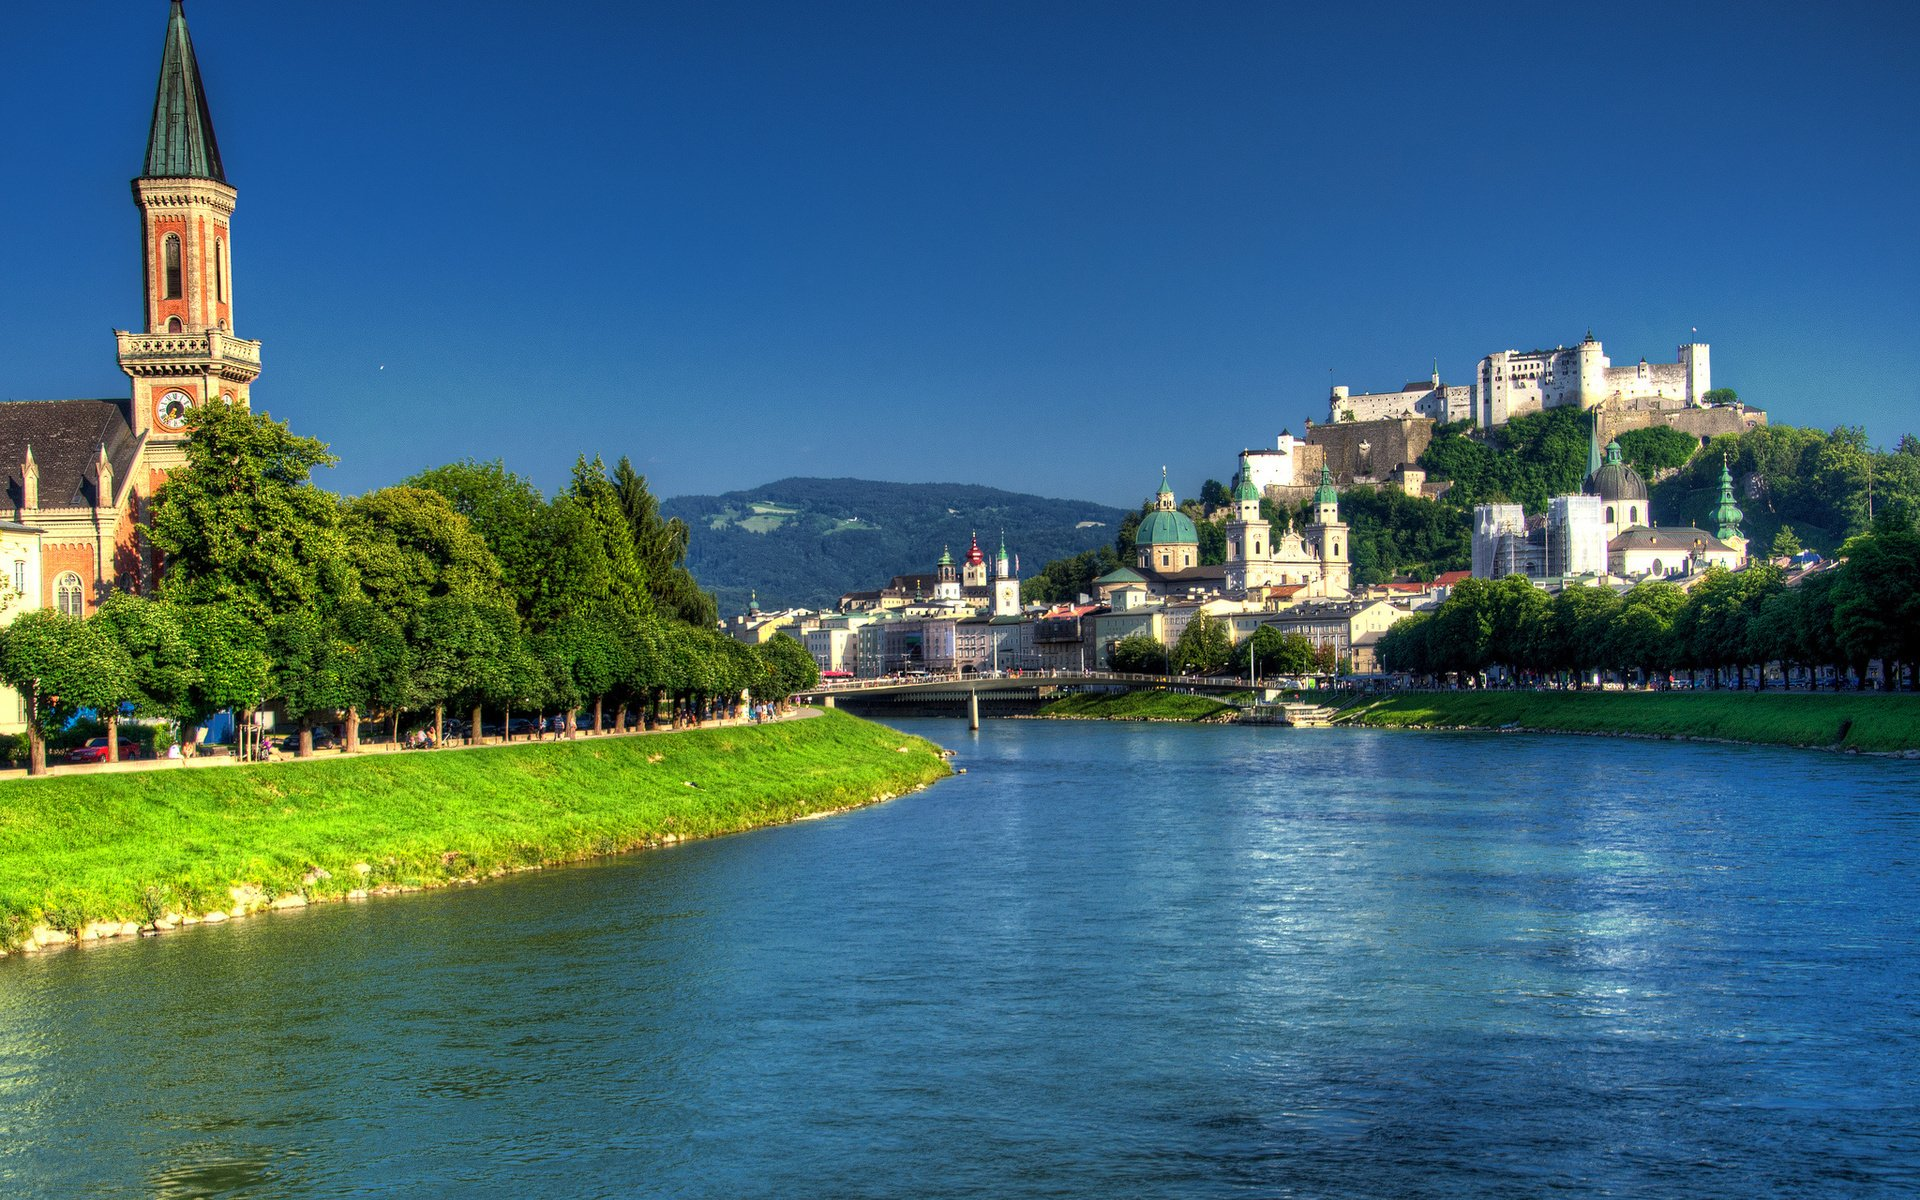 Salzburg Wallpapers and Background Images   stmednet 1920x1200